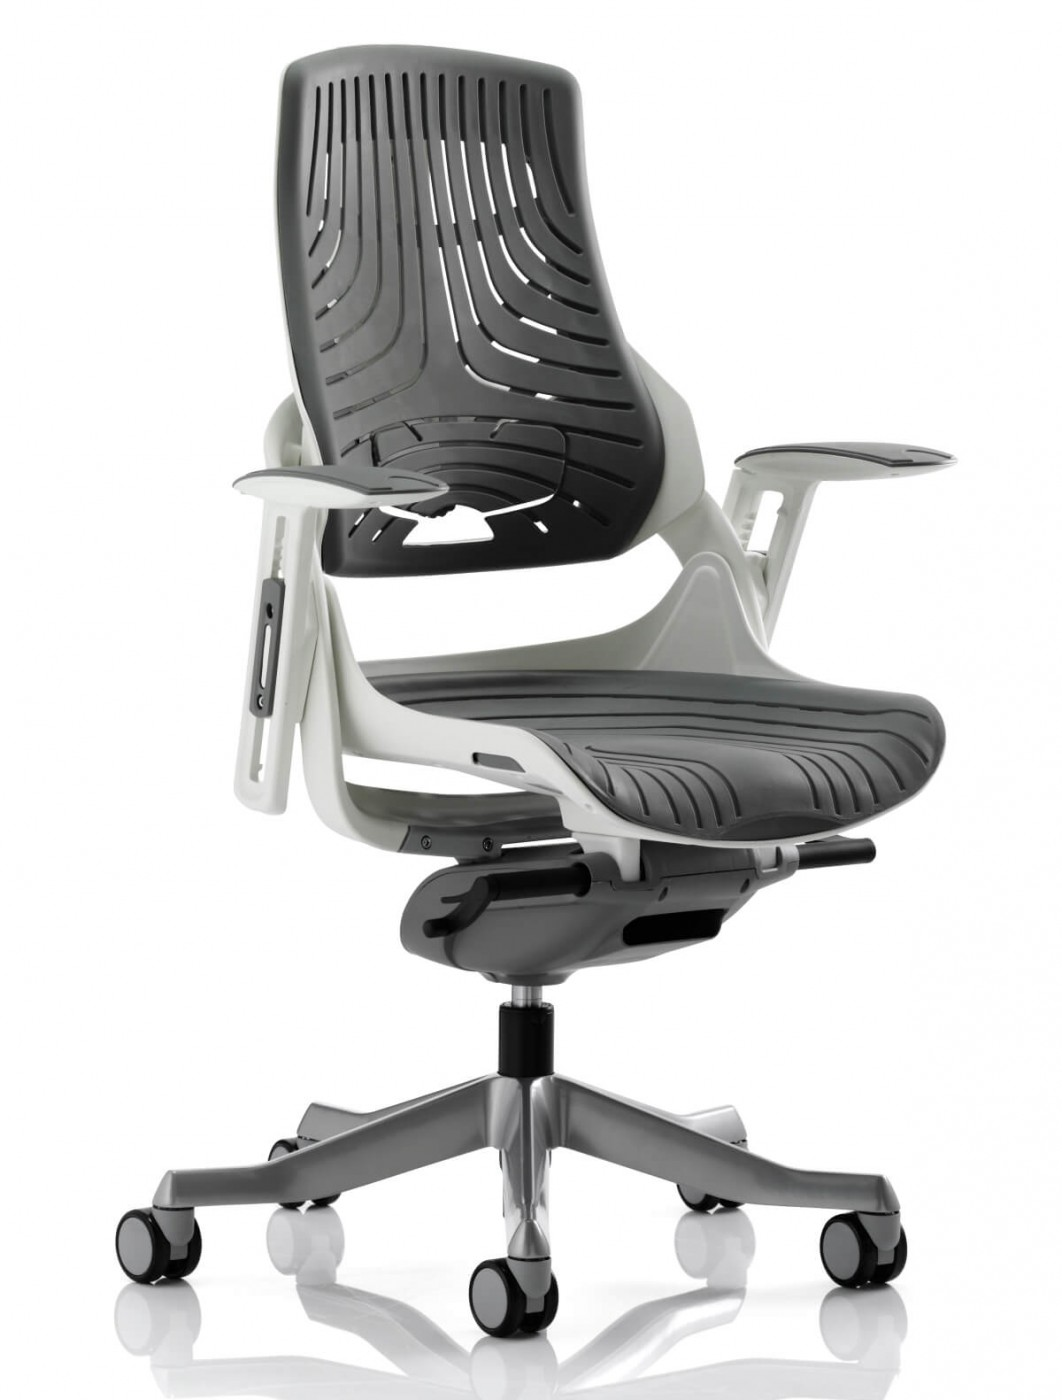 Office Chairs - Zure Grey Executive Elastomer Office Chair EX000112